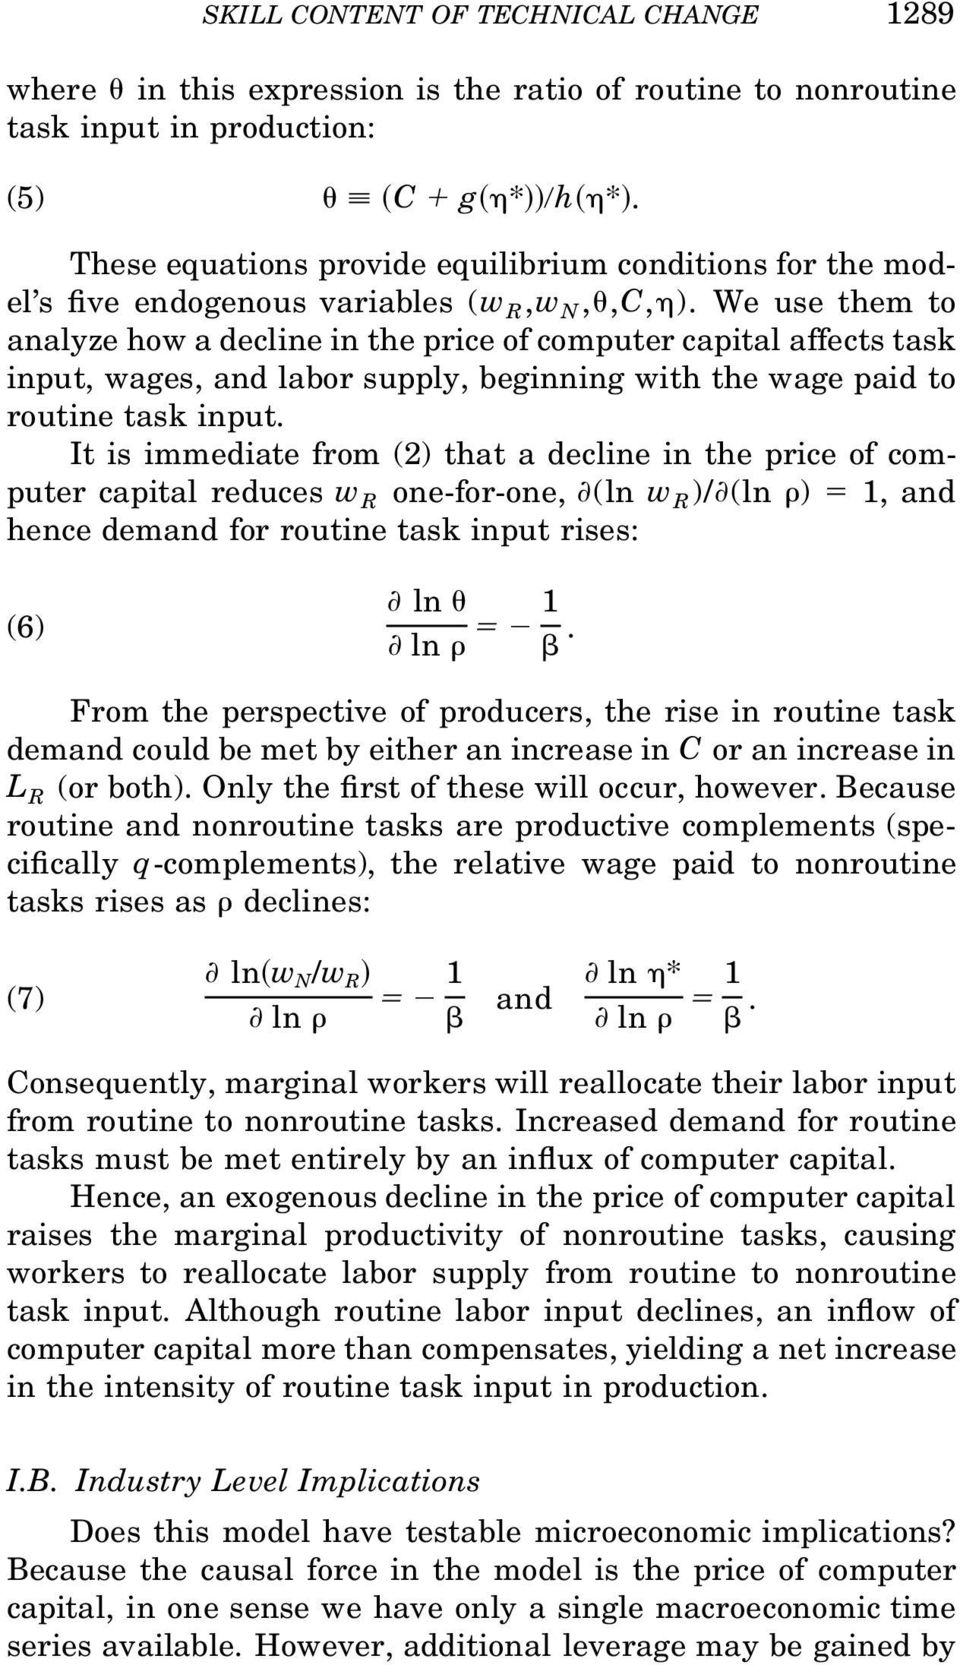 We use them to analyze how a decline in the price of computer capital affects task input, wages, and labor supply, beginning with the wage paid to routine task input.